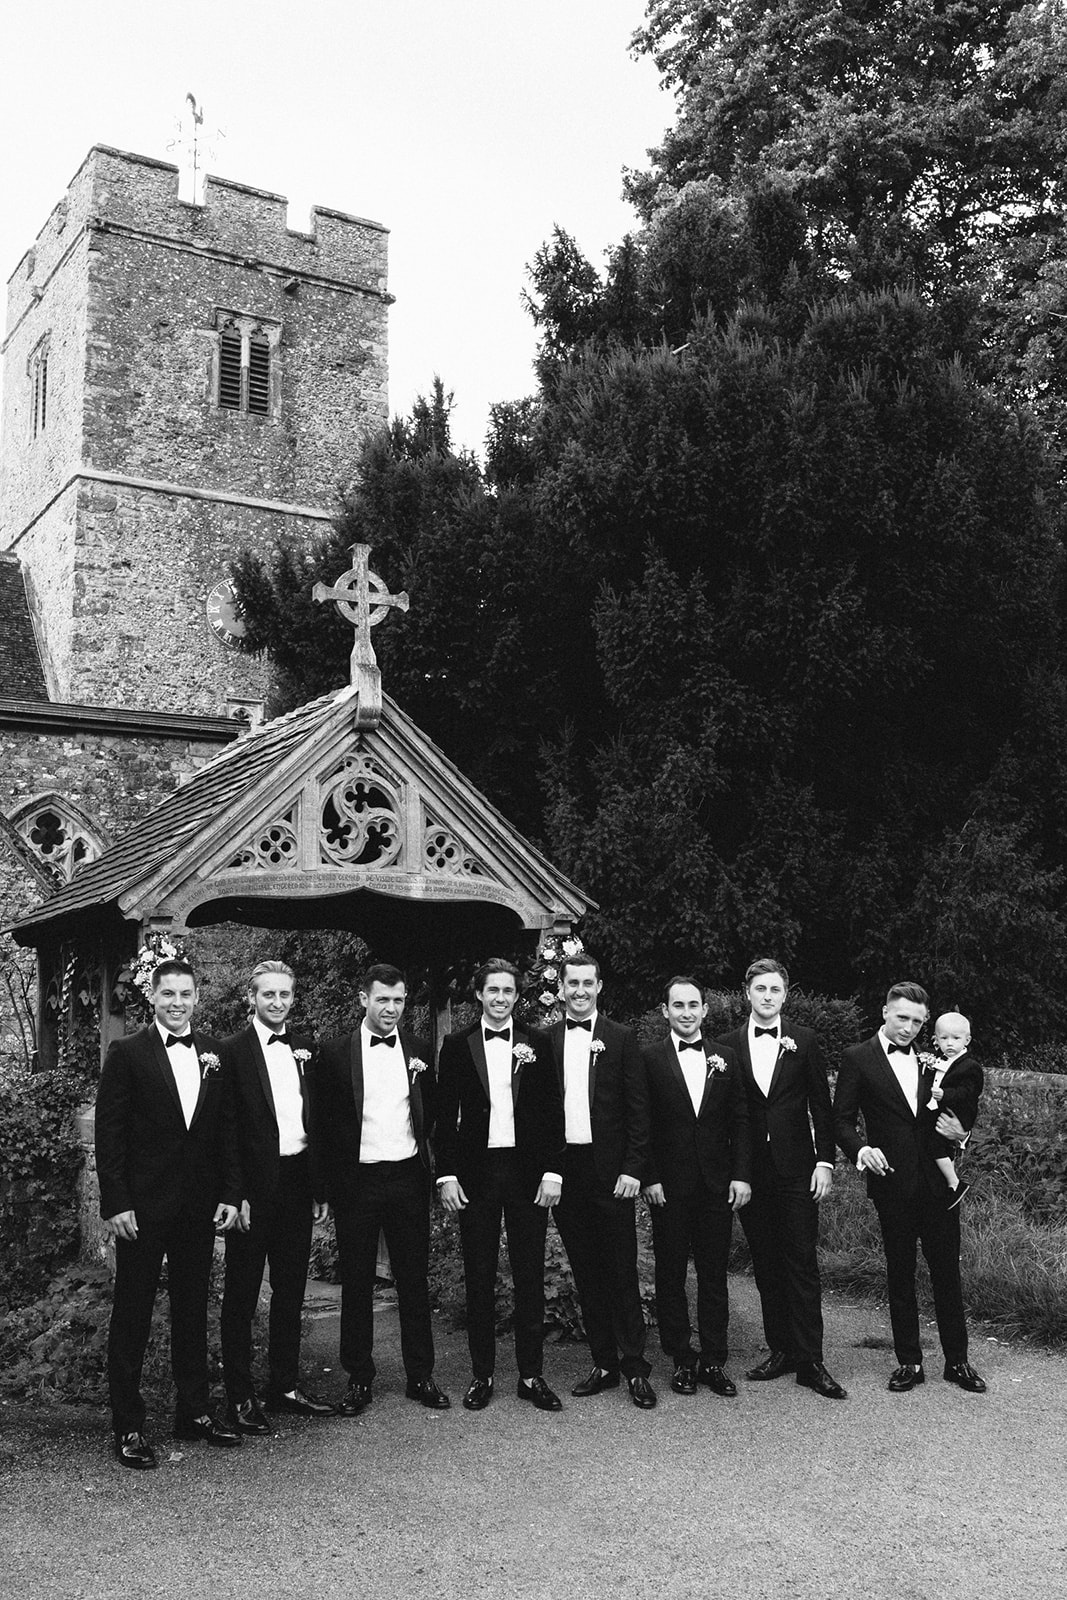 London & Kent Wedding Photographer wedding planning guide - Group photos of groom and best men